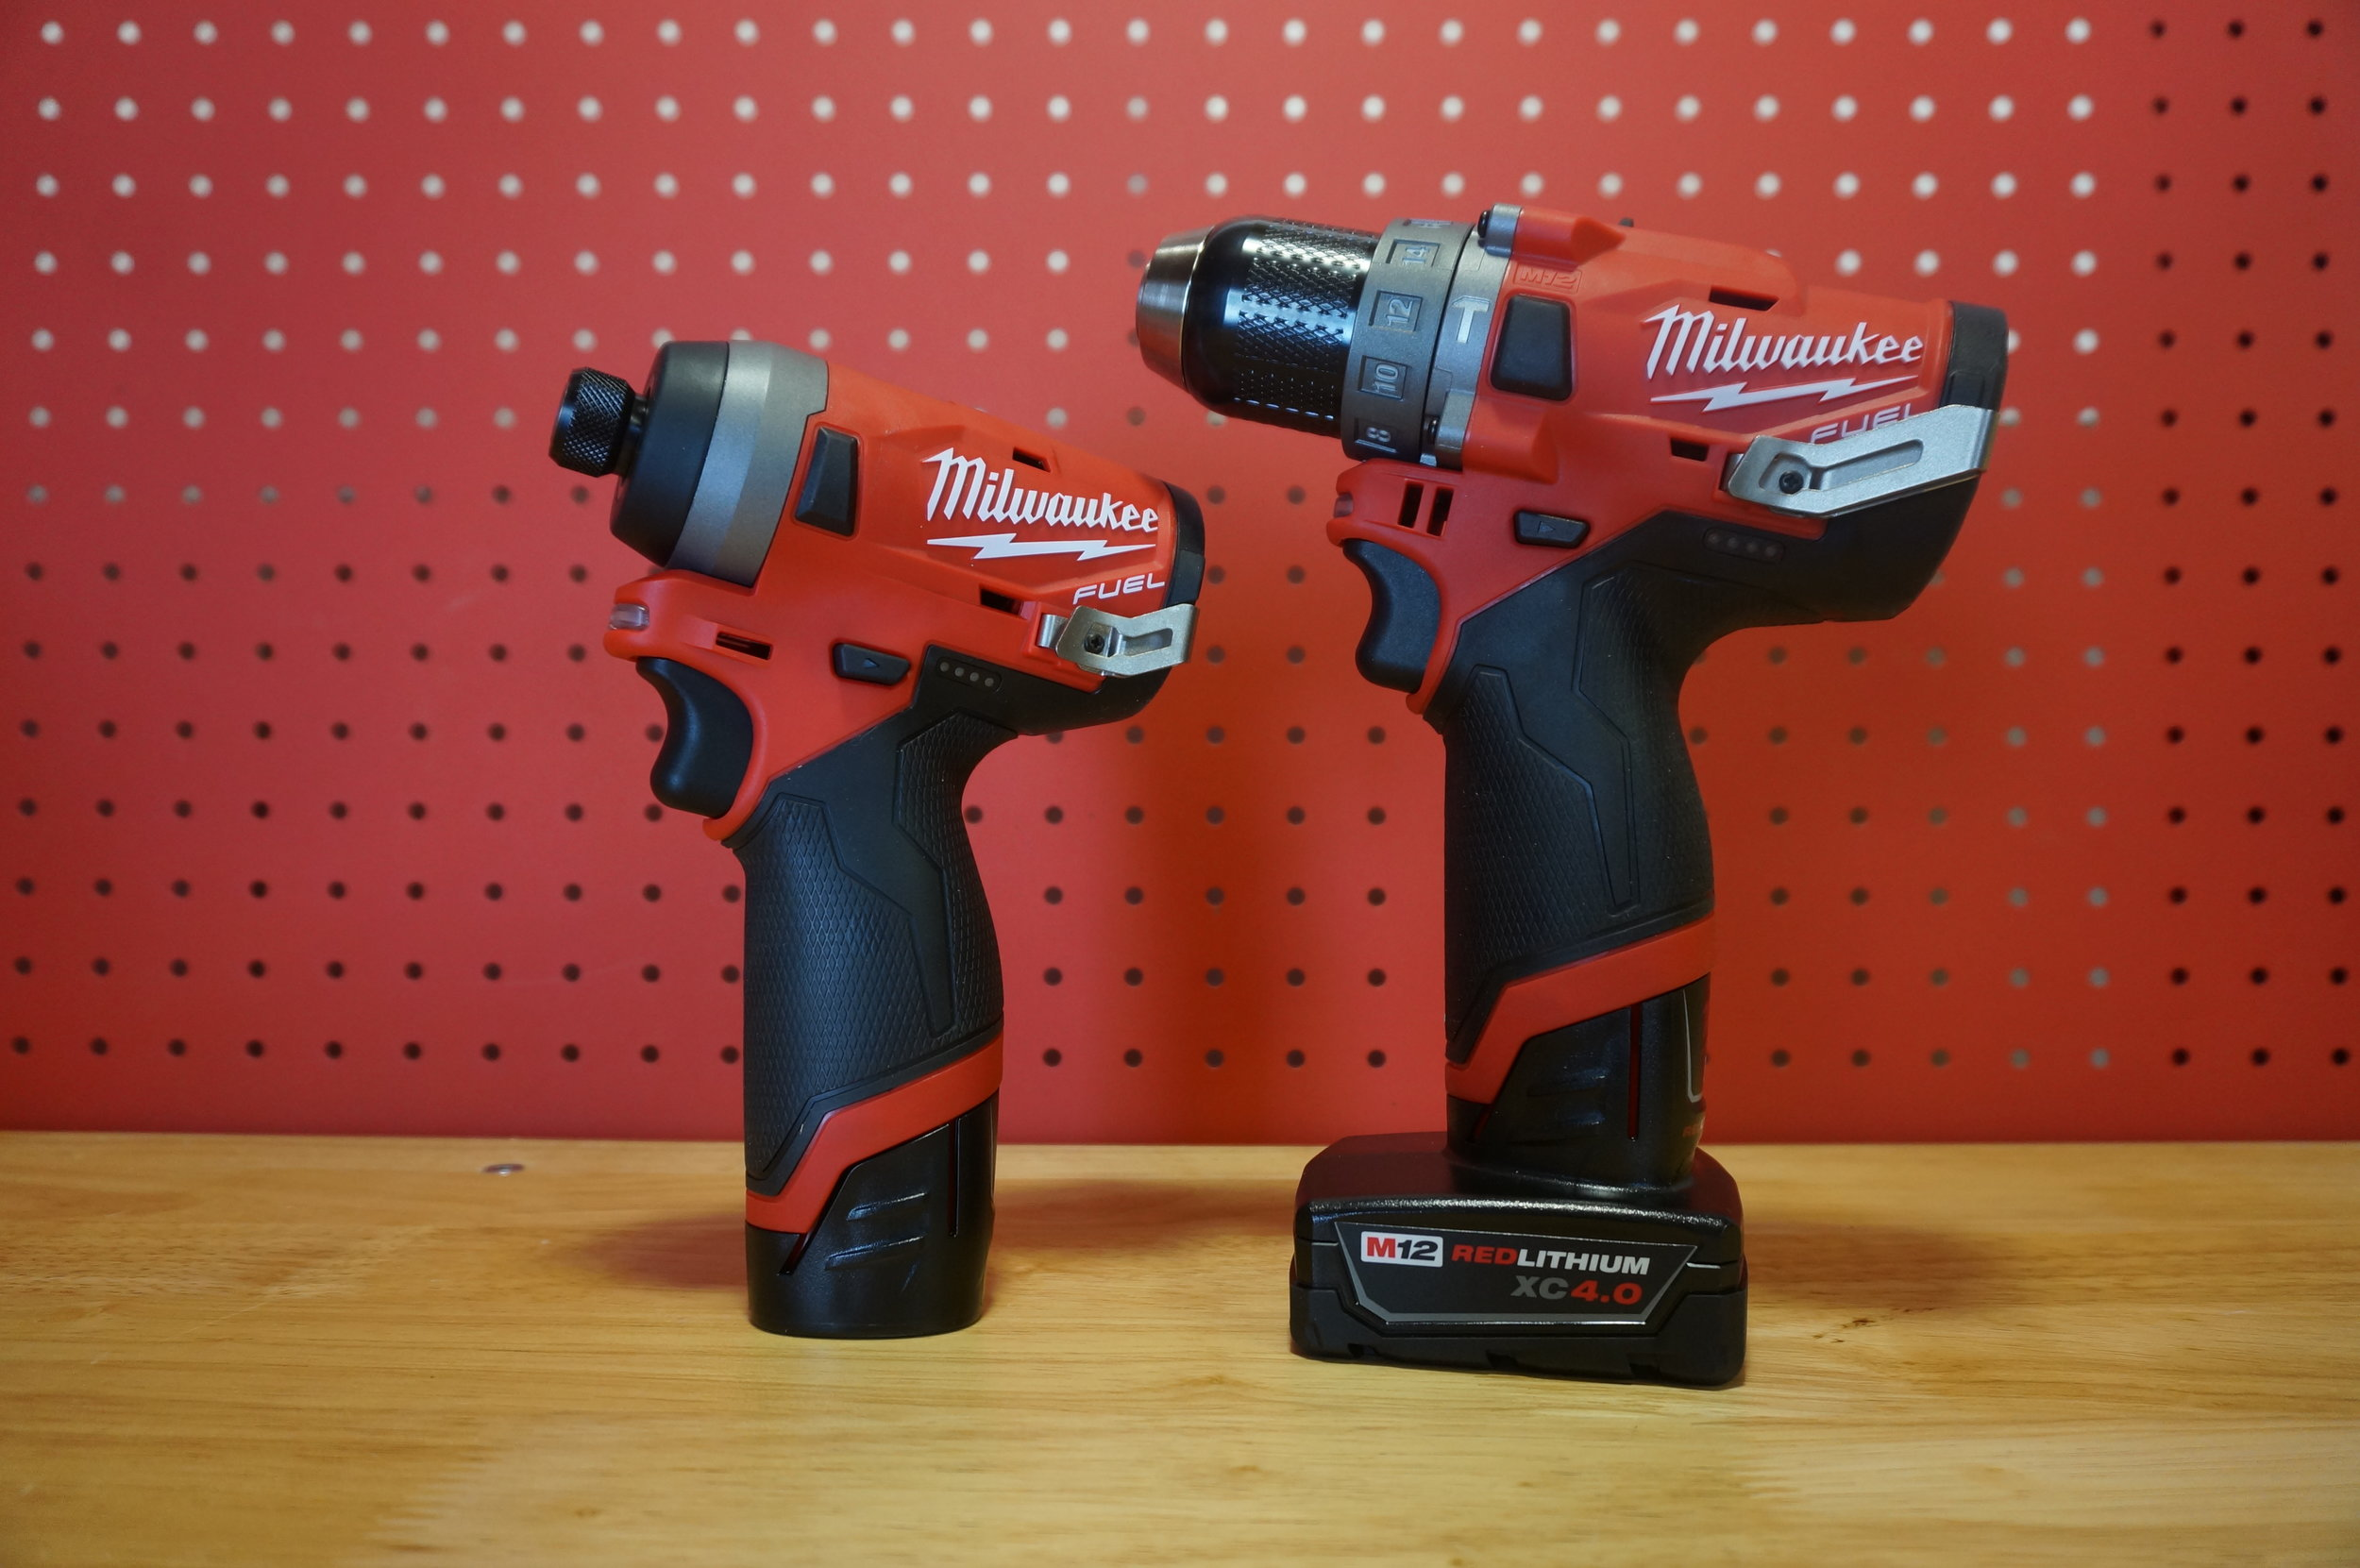 MIlwaukee Tool's Gen 2 M12 Fuel Impact Driver (left) and Hammer Drill (right)